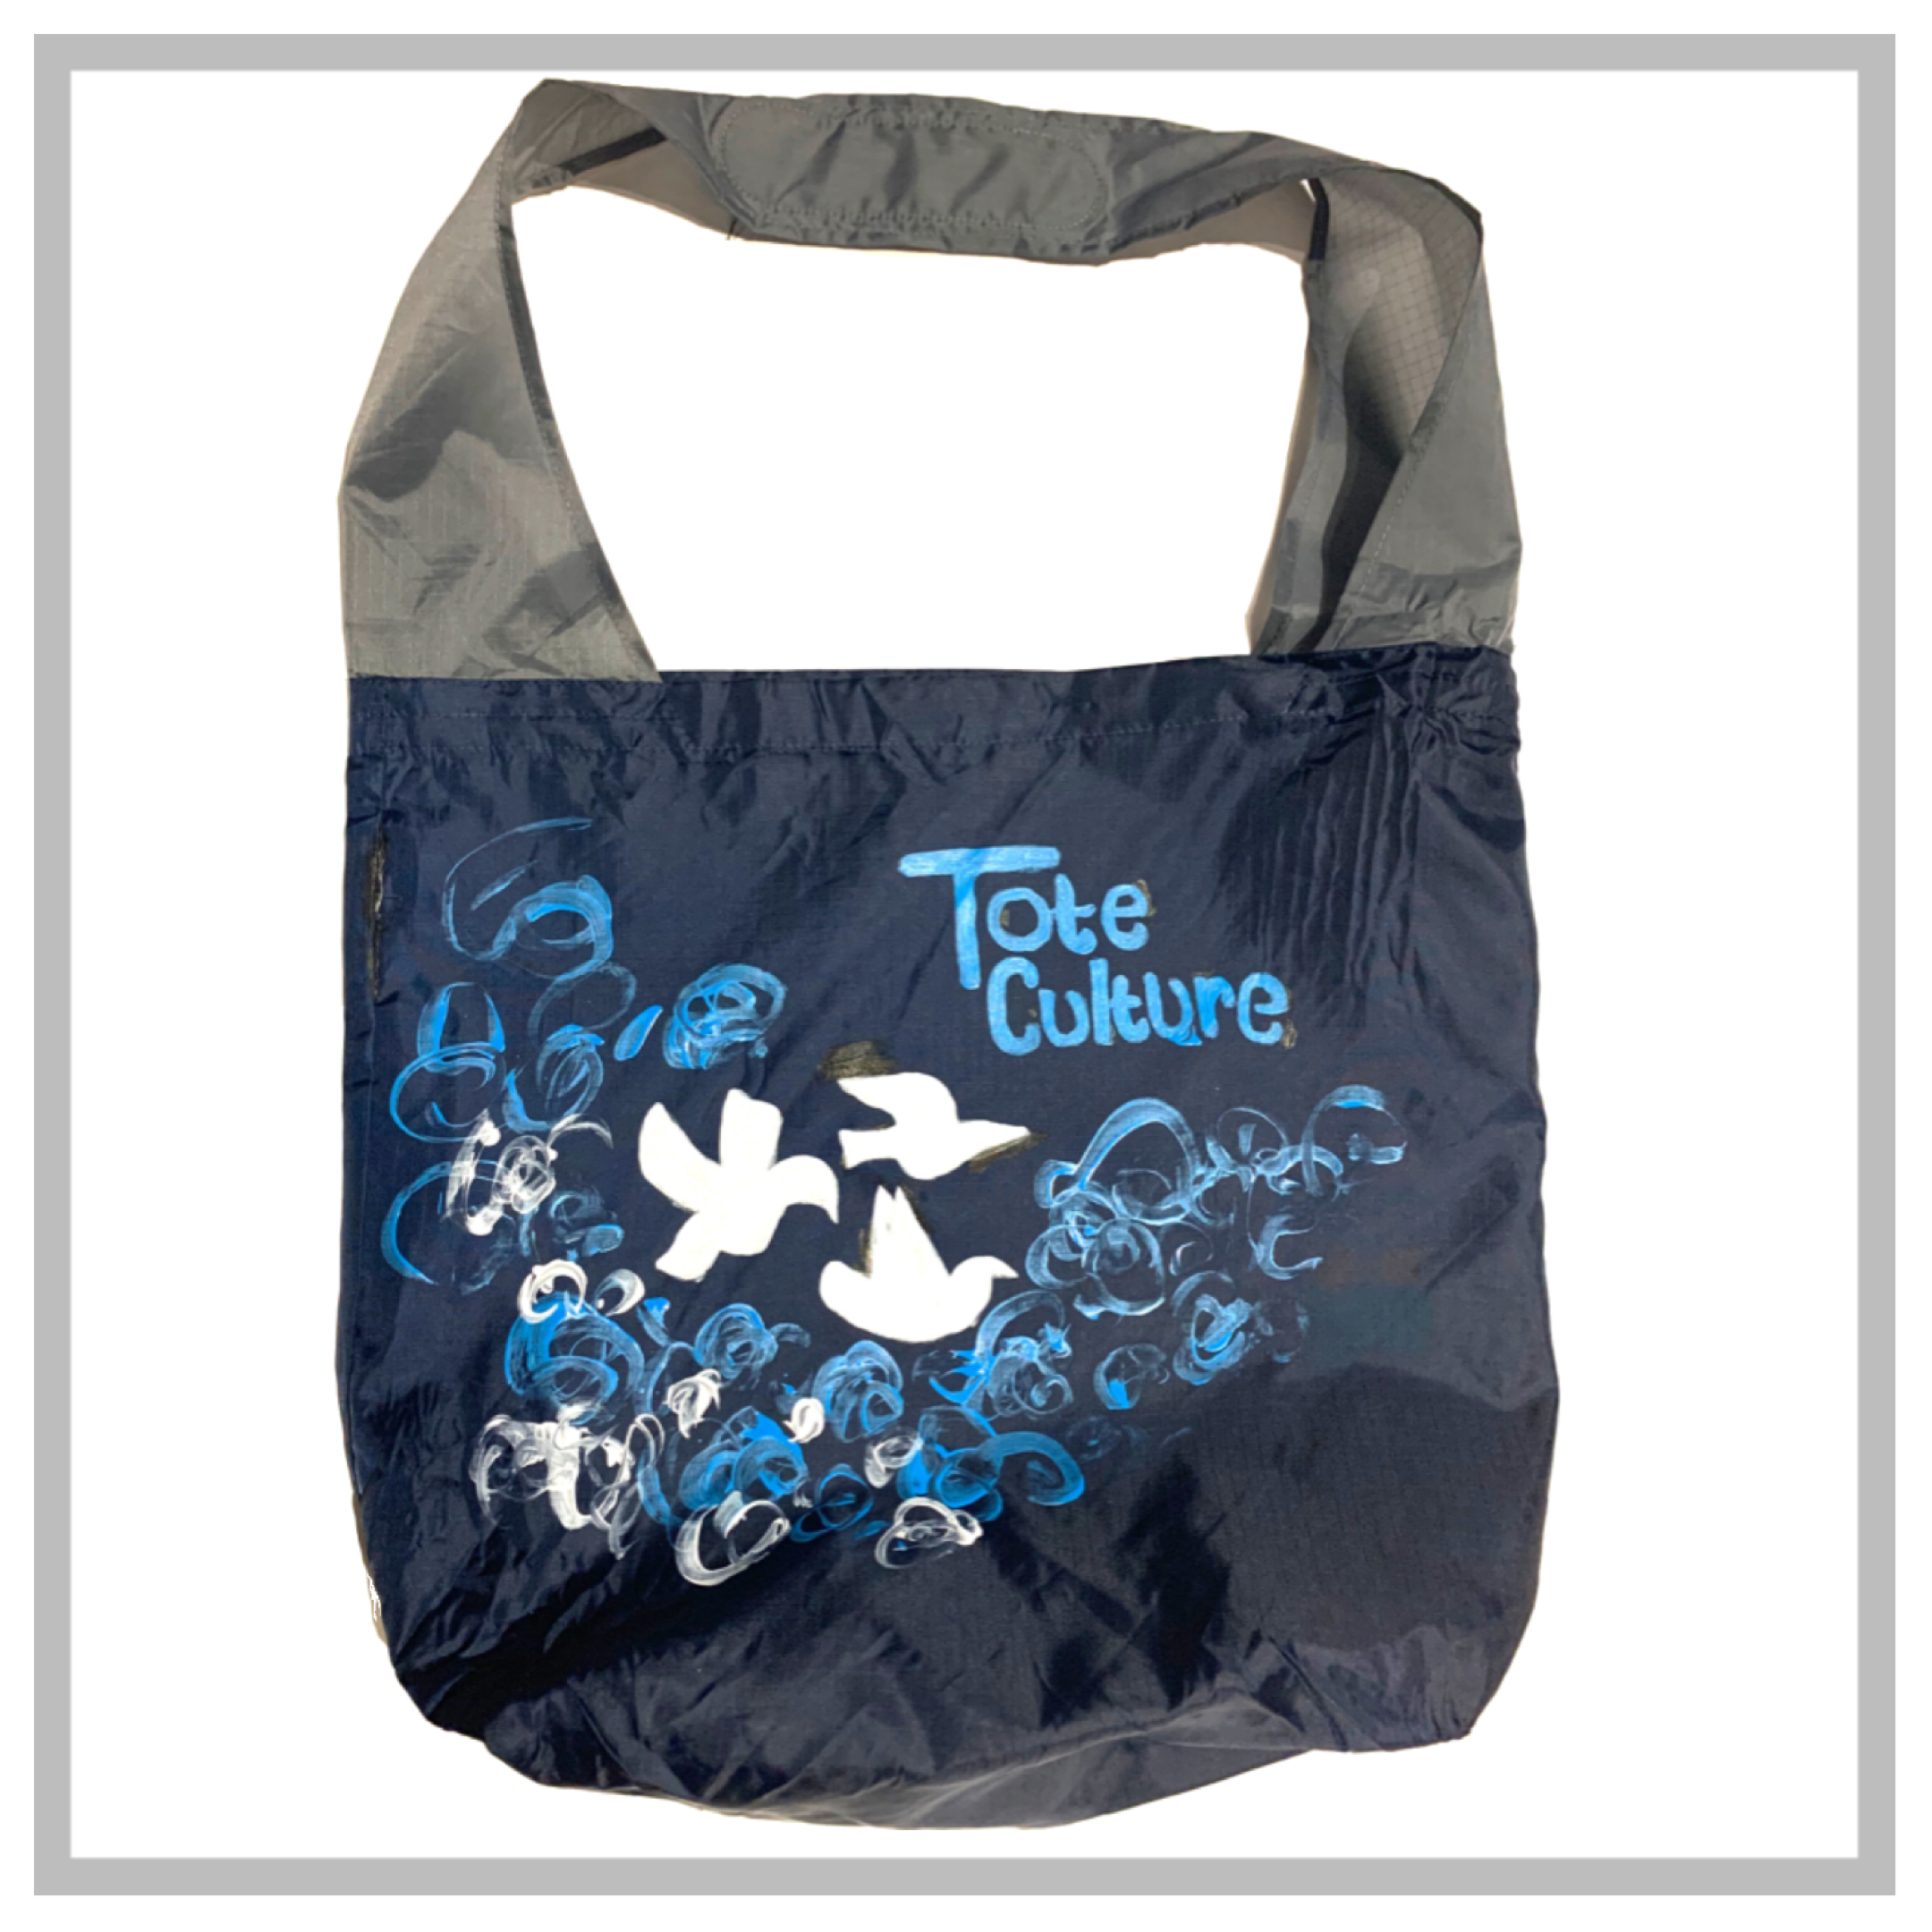 Tote Piece FreeStyle Painted Messenger Coming Soon